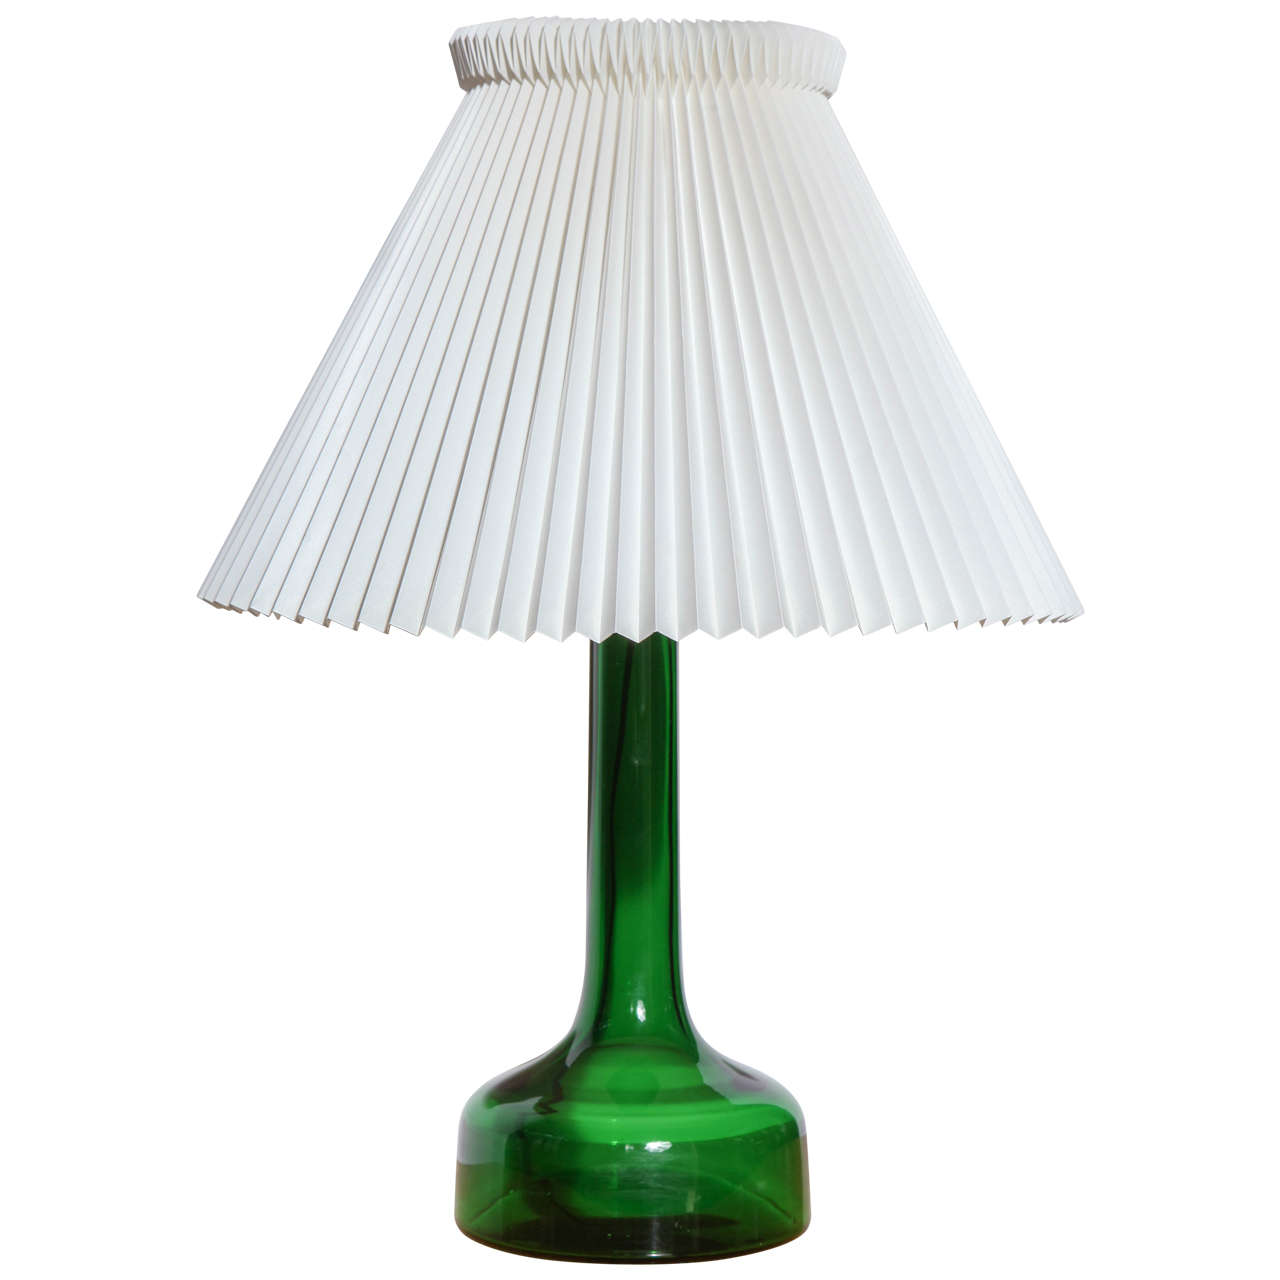 le klint table lamps circa 1980 for sale at 1stdibs